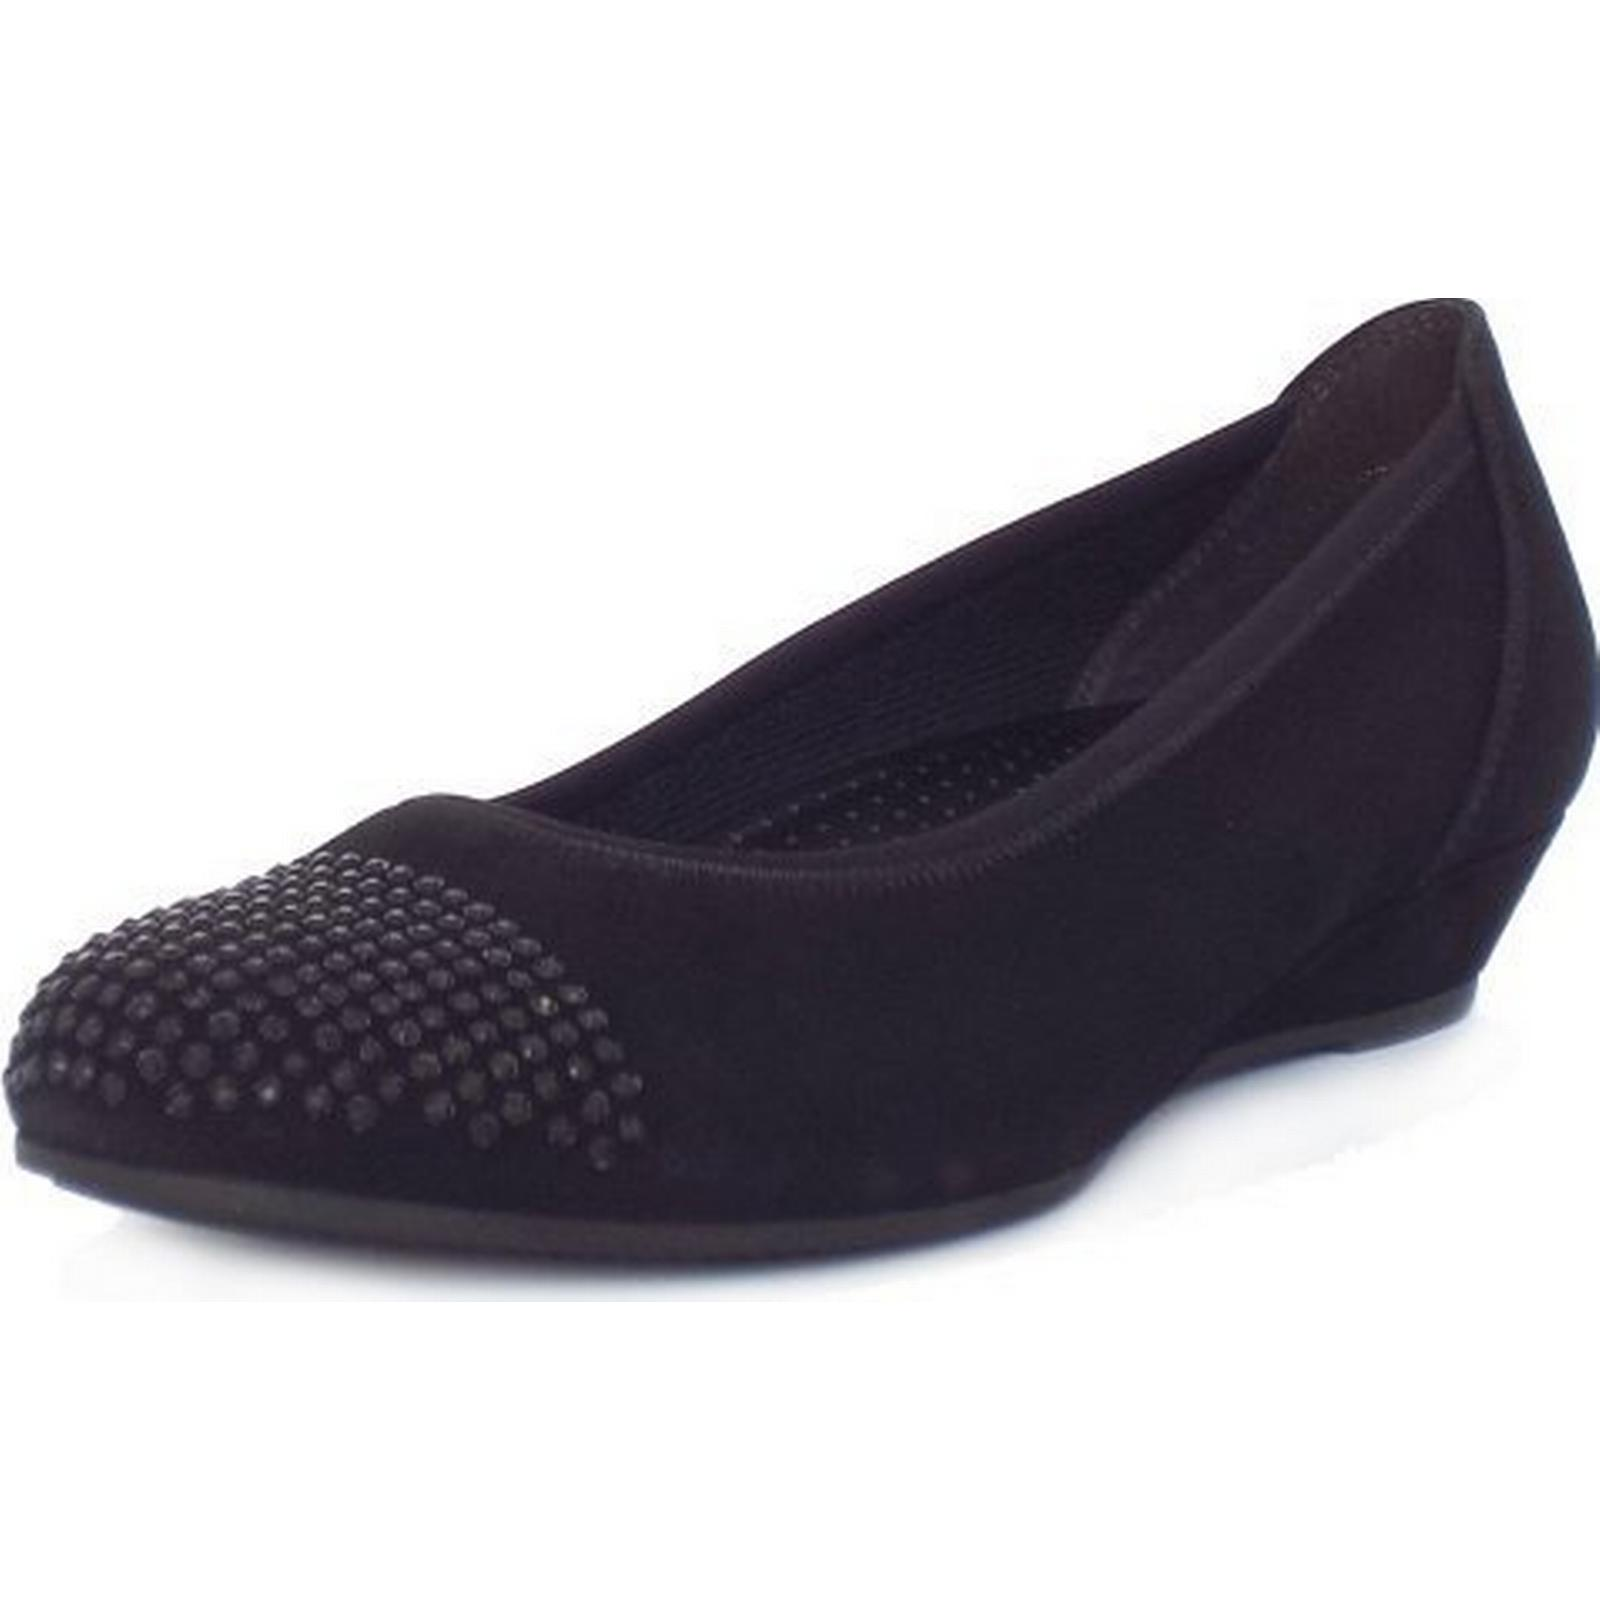 Gabor Mira Shoe In Black Size: 2, BLACK Colour: BLACK 2, SUED 8f6d7d